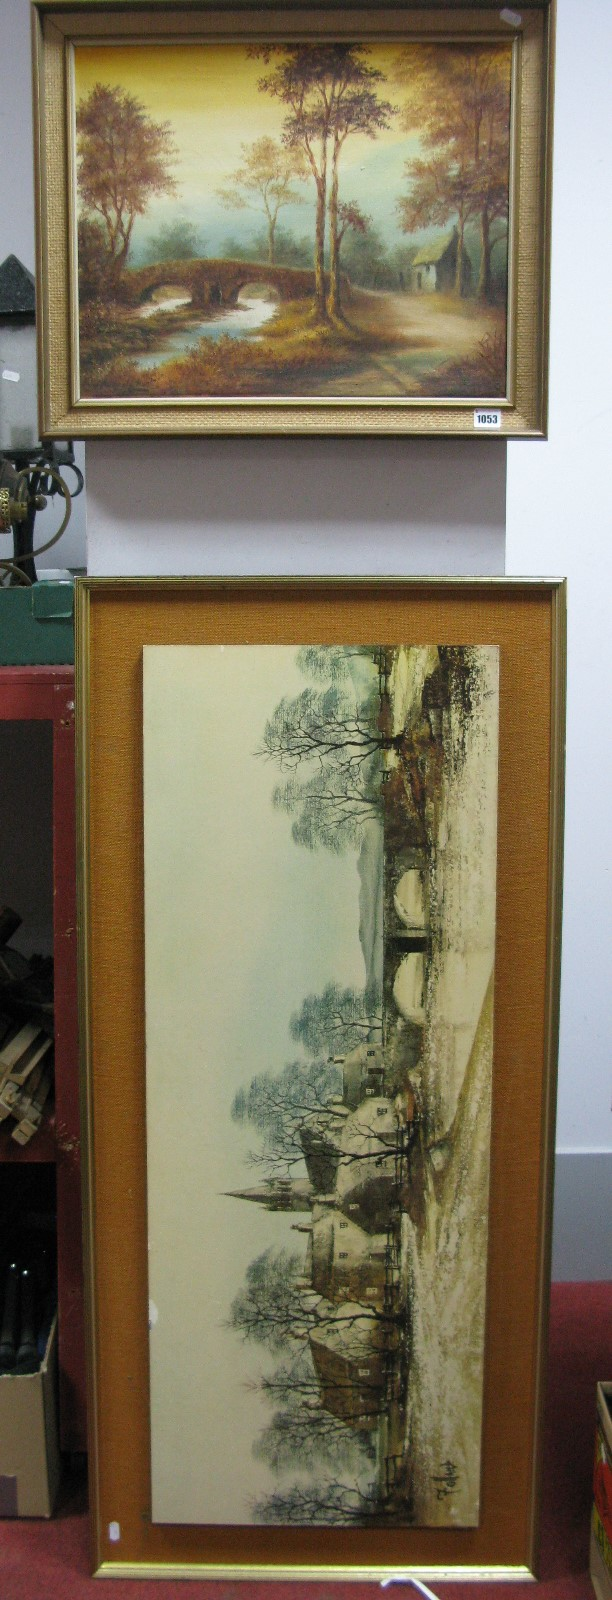 Lot 1053 - J. Heathcote Hunt Oil On Canvas, Pack Horse Bridge, Dovedale; together with a print by Follond of